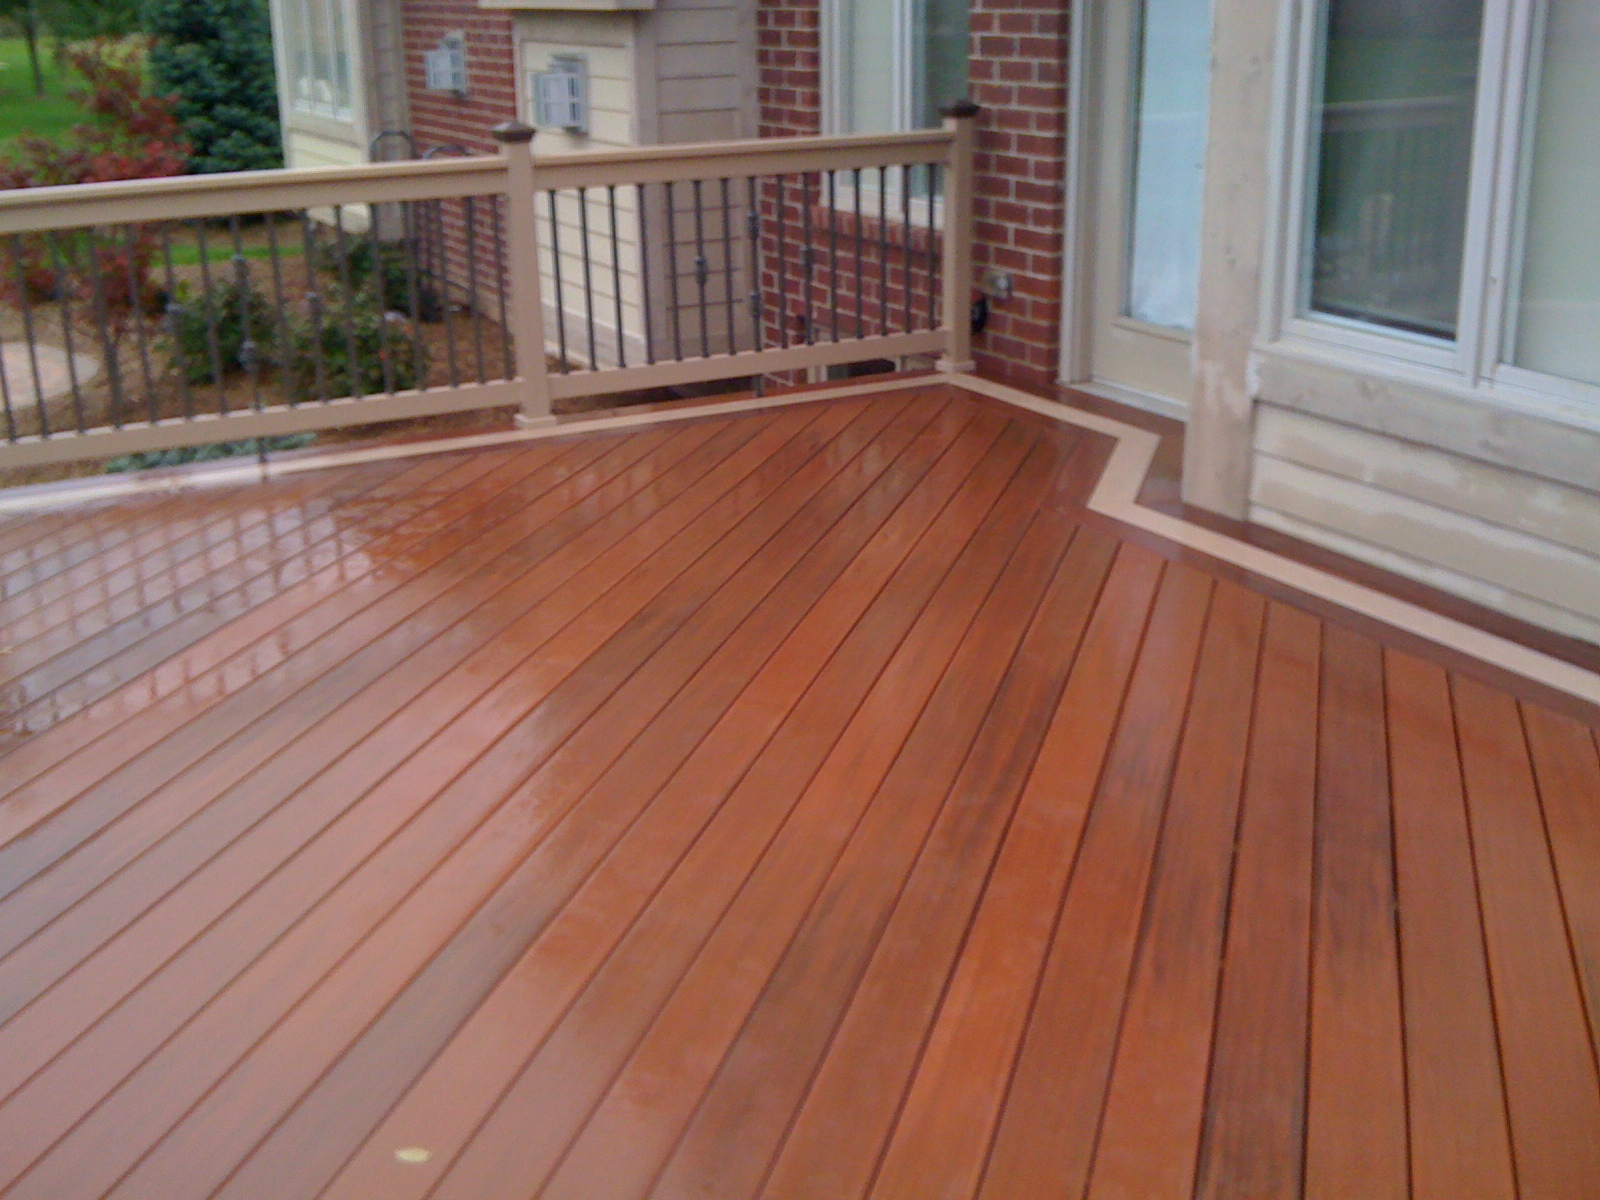 3 Color Deck Ideas : Three ways to customize your deck talk